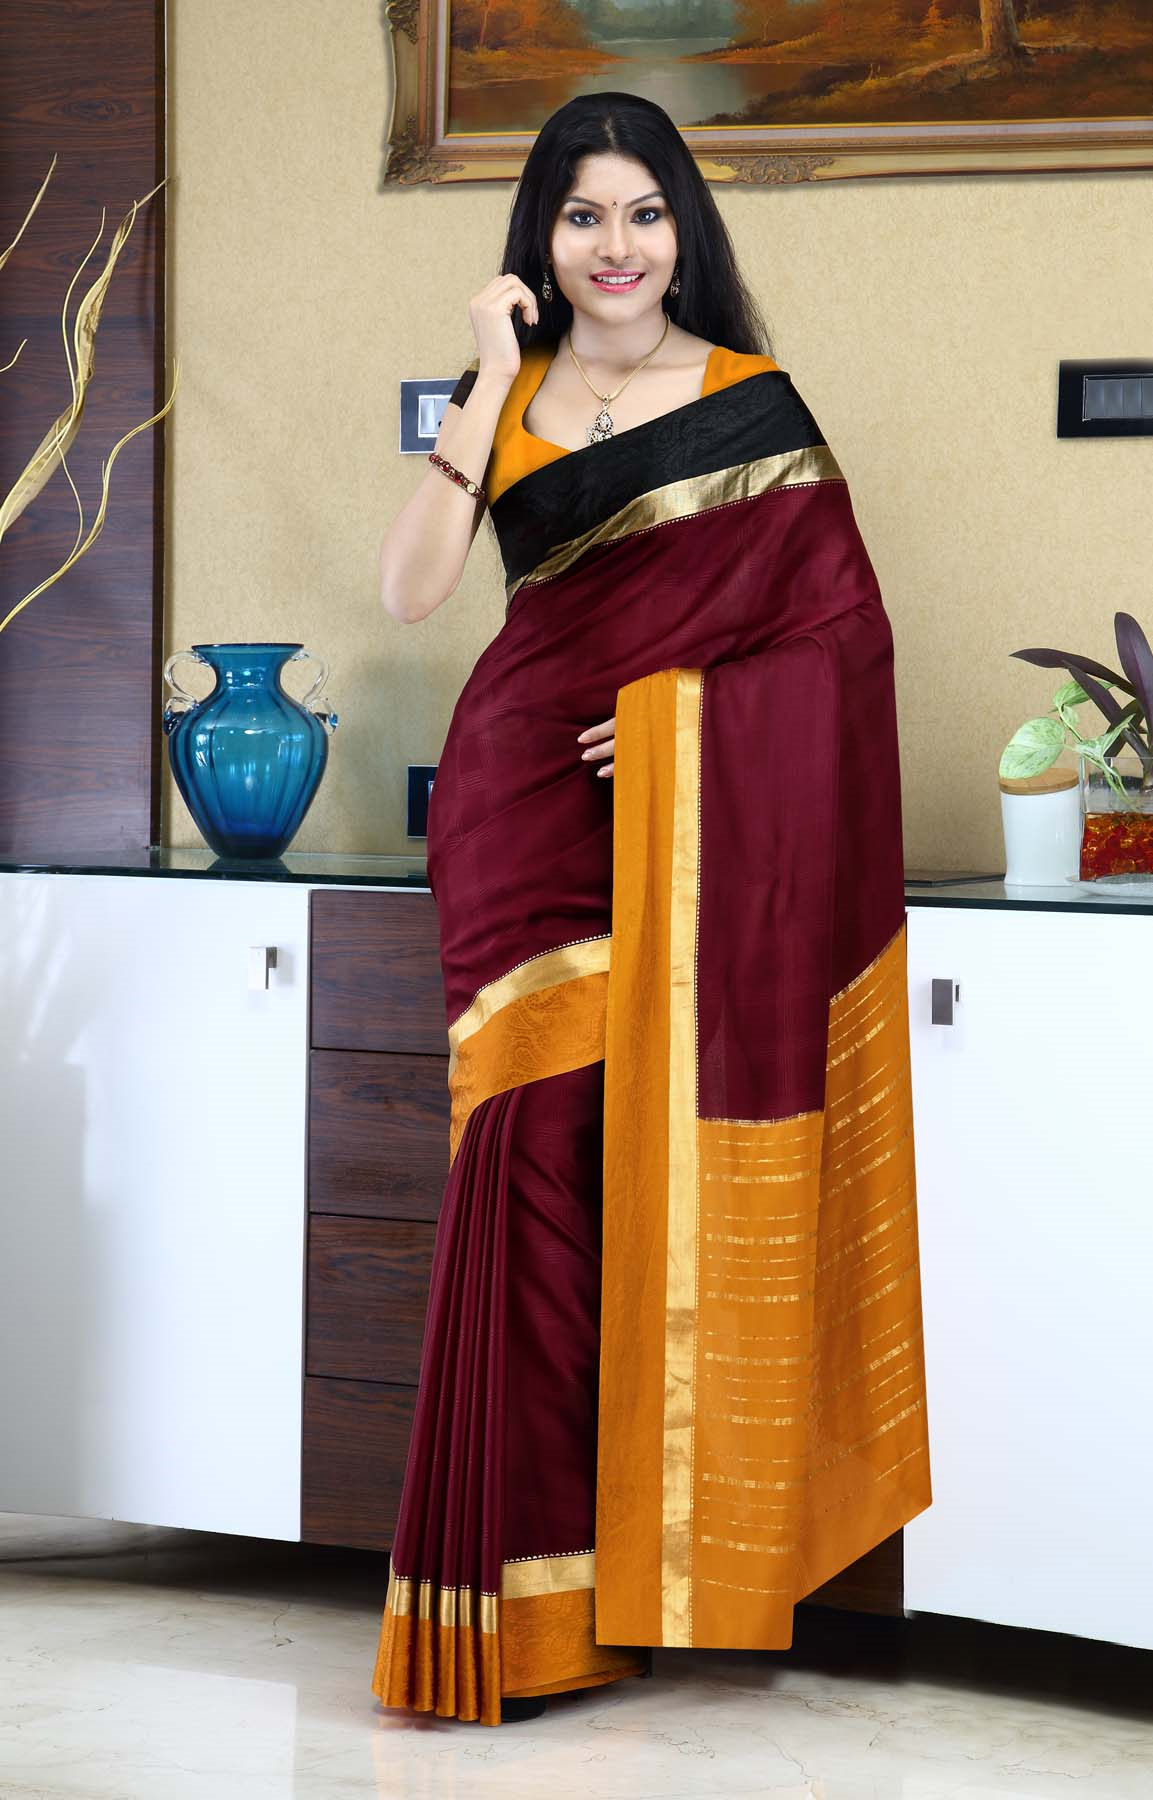 613423c1e6 Maroon mysore silk saree with a paisley pattern on double-colored border -  RmKV Silks